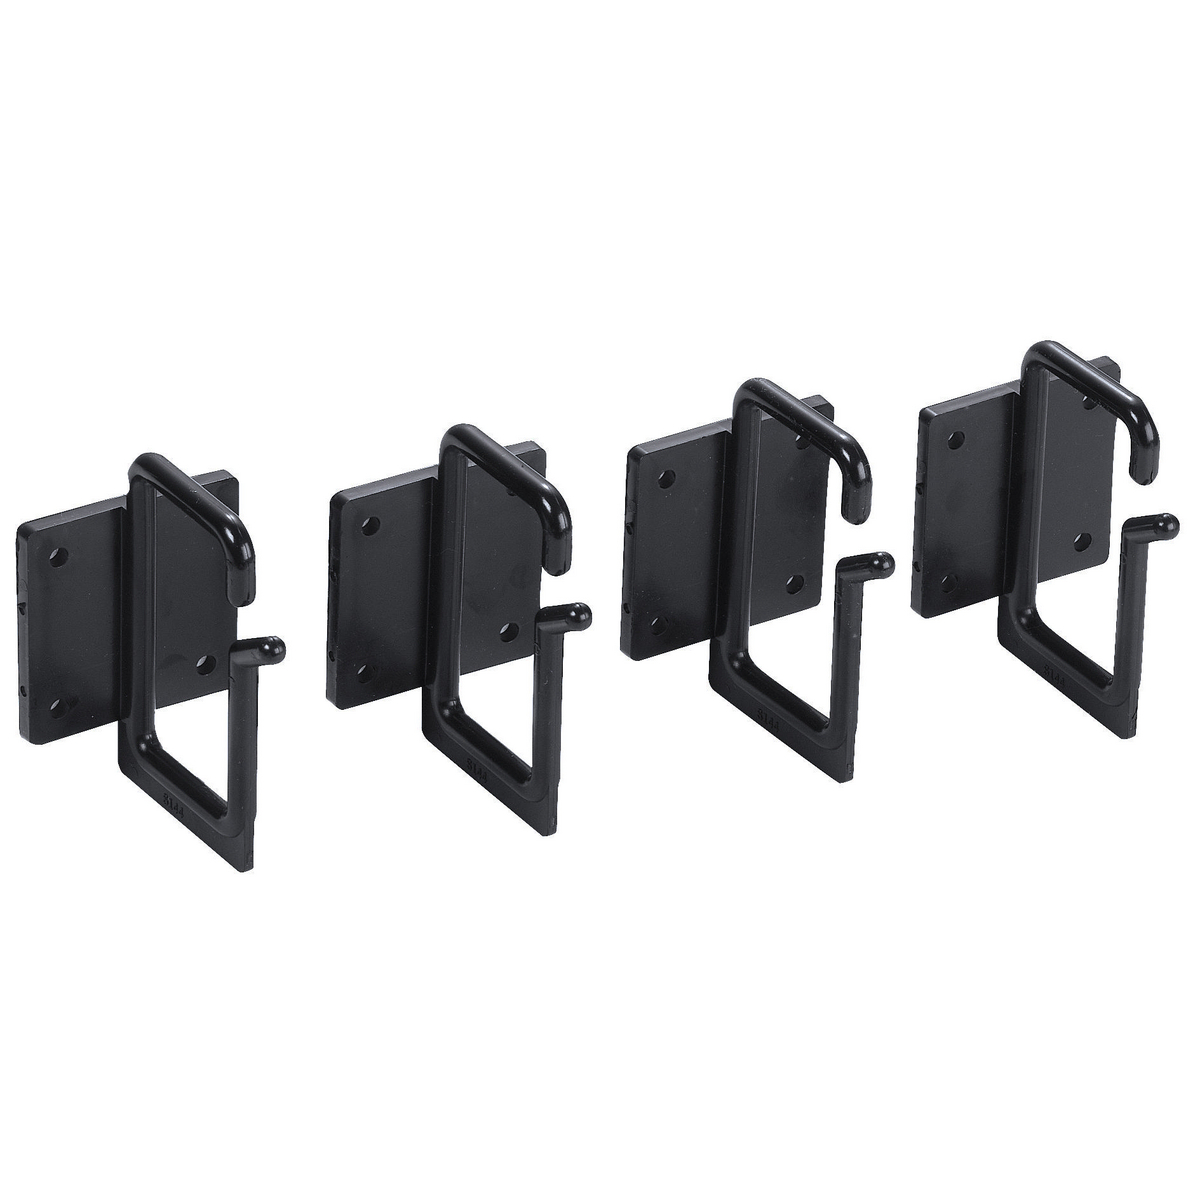 Plastic Cable Management Rings (Package of 4)